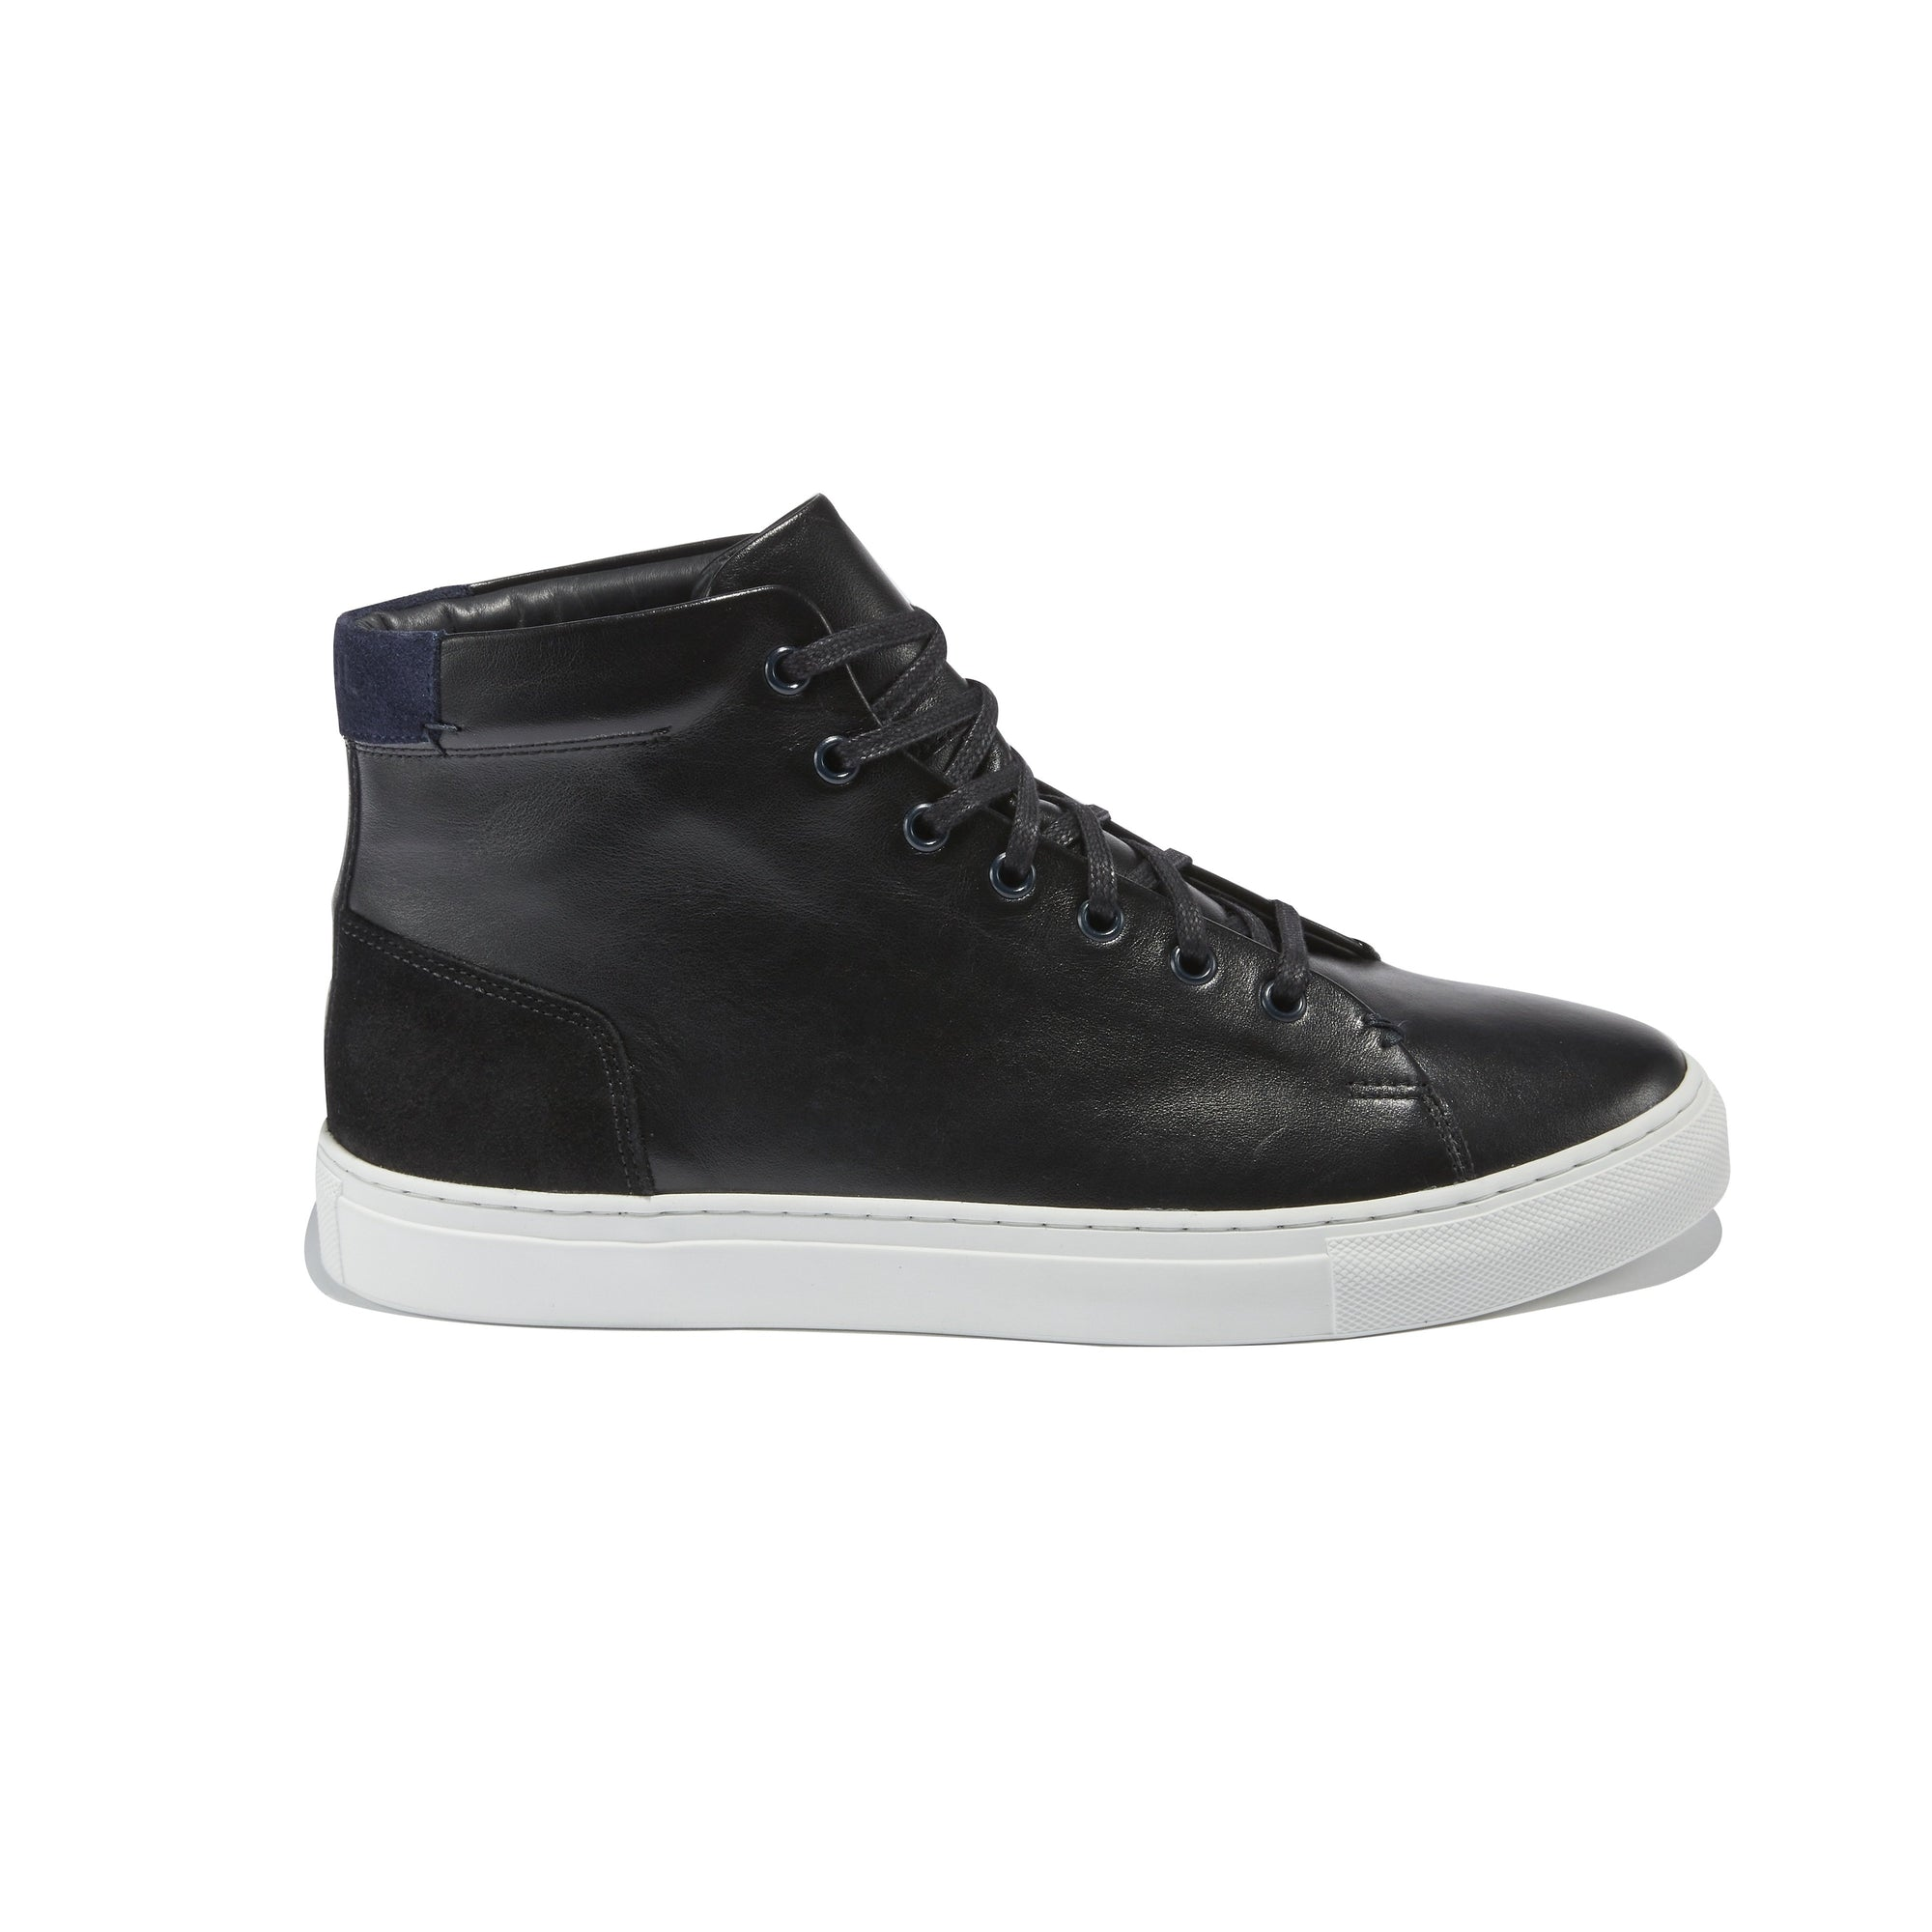 Men's Porto Hightop Sneaker in Black Leather - The HiO Life